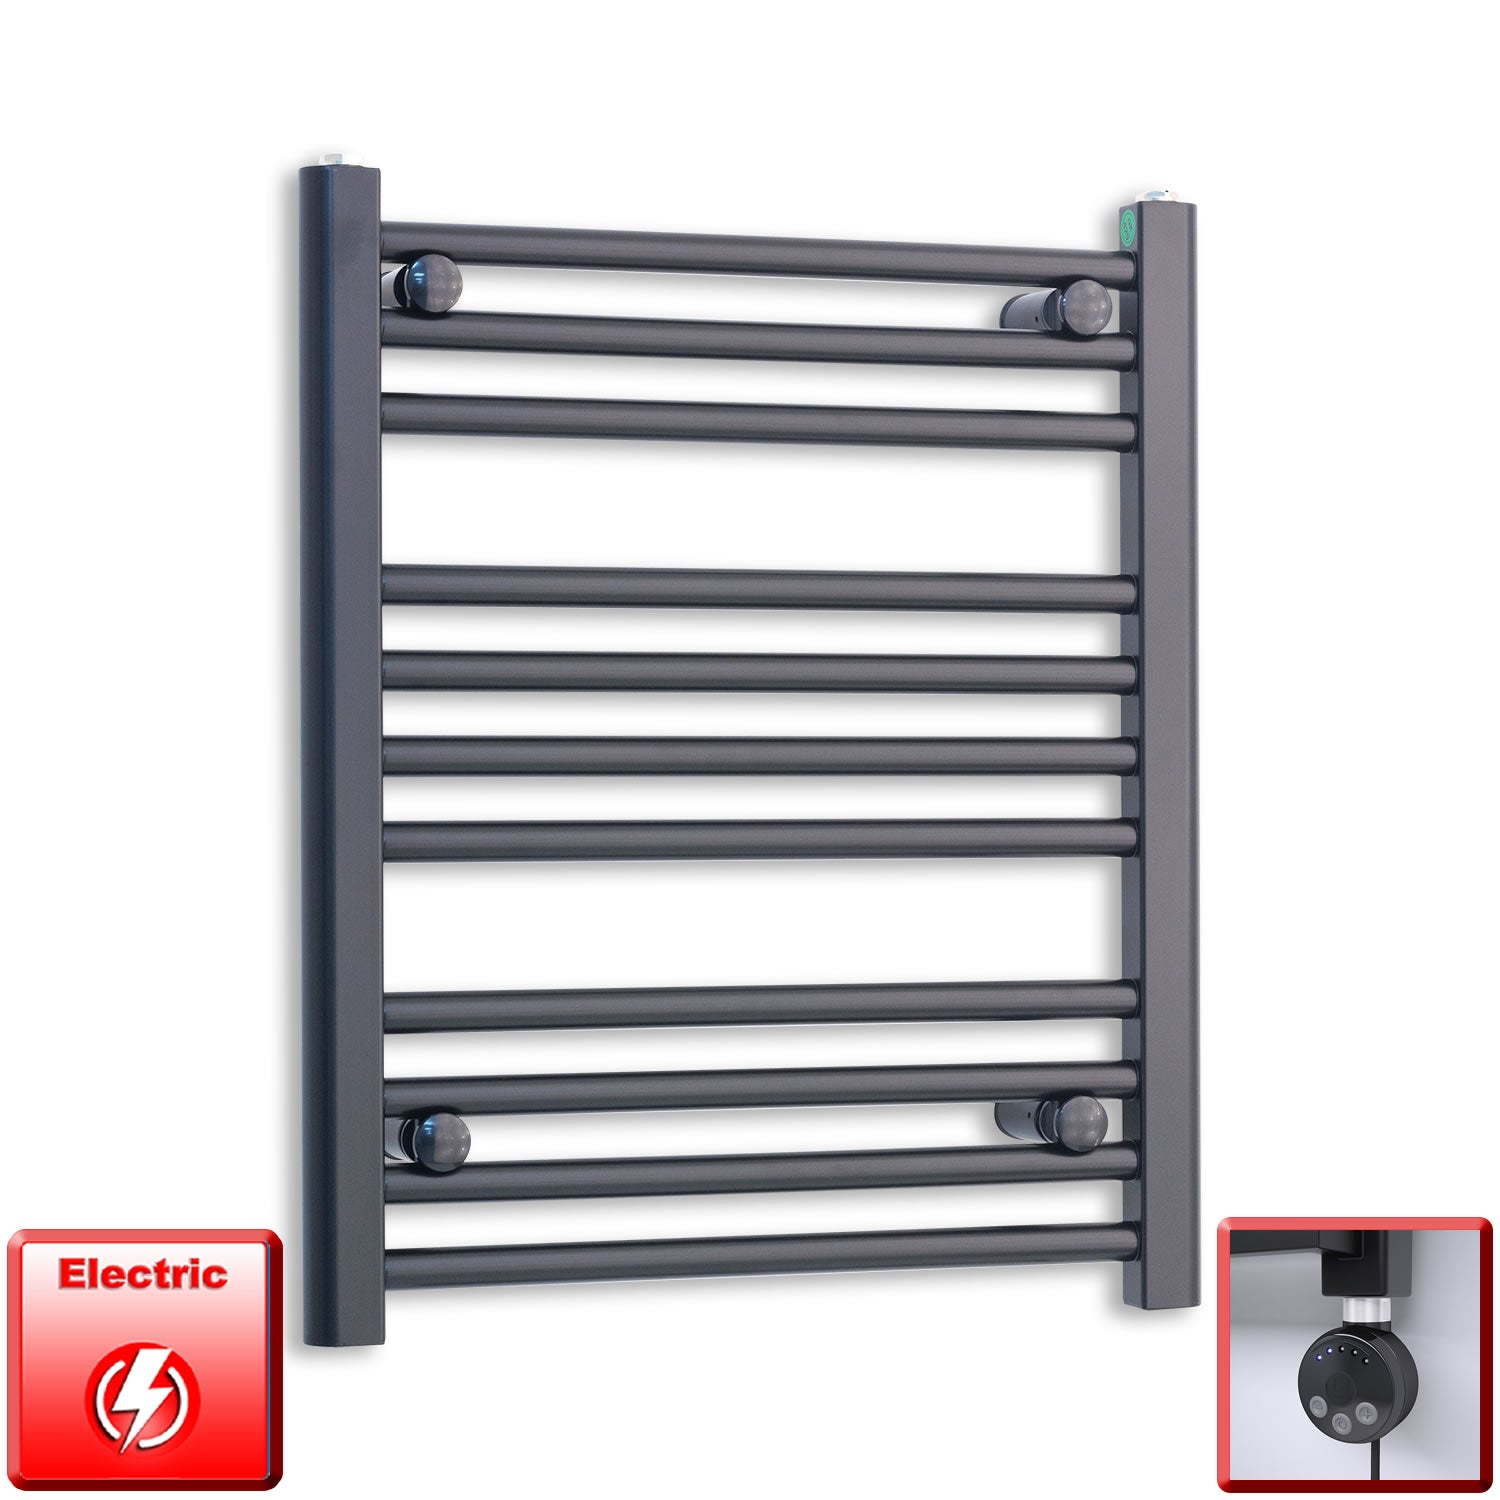 600mm Wide 600mm High Pre-Filled Black Electric Towel Rail Radiator With Thermostatic MEG Element